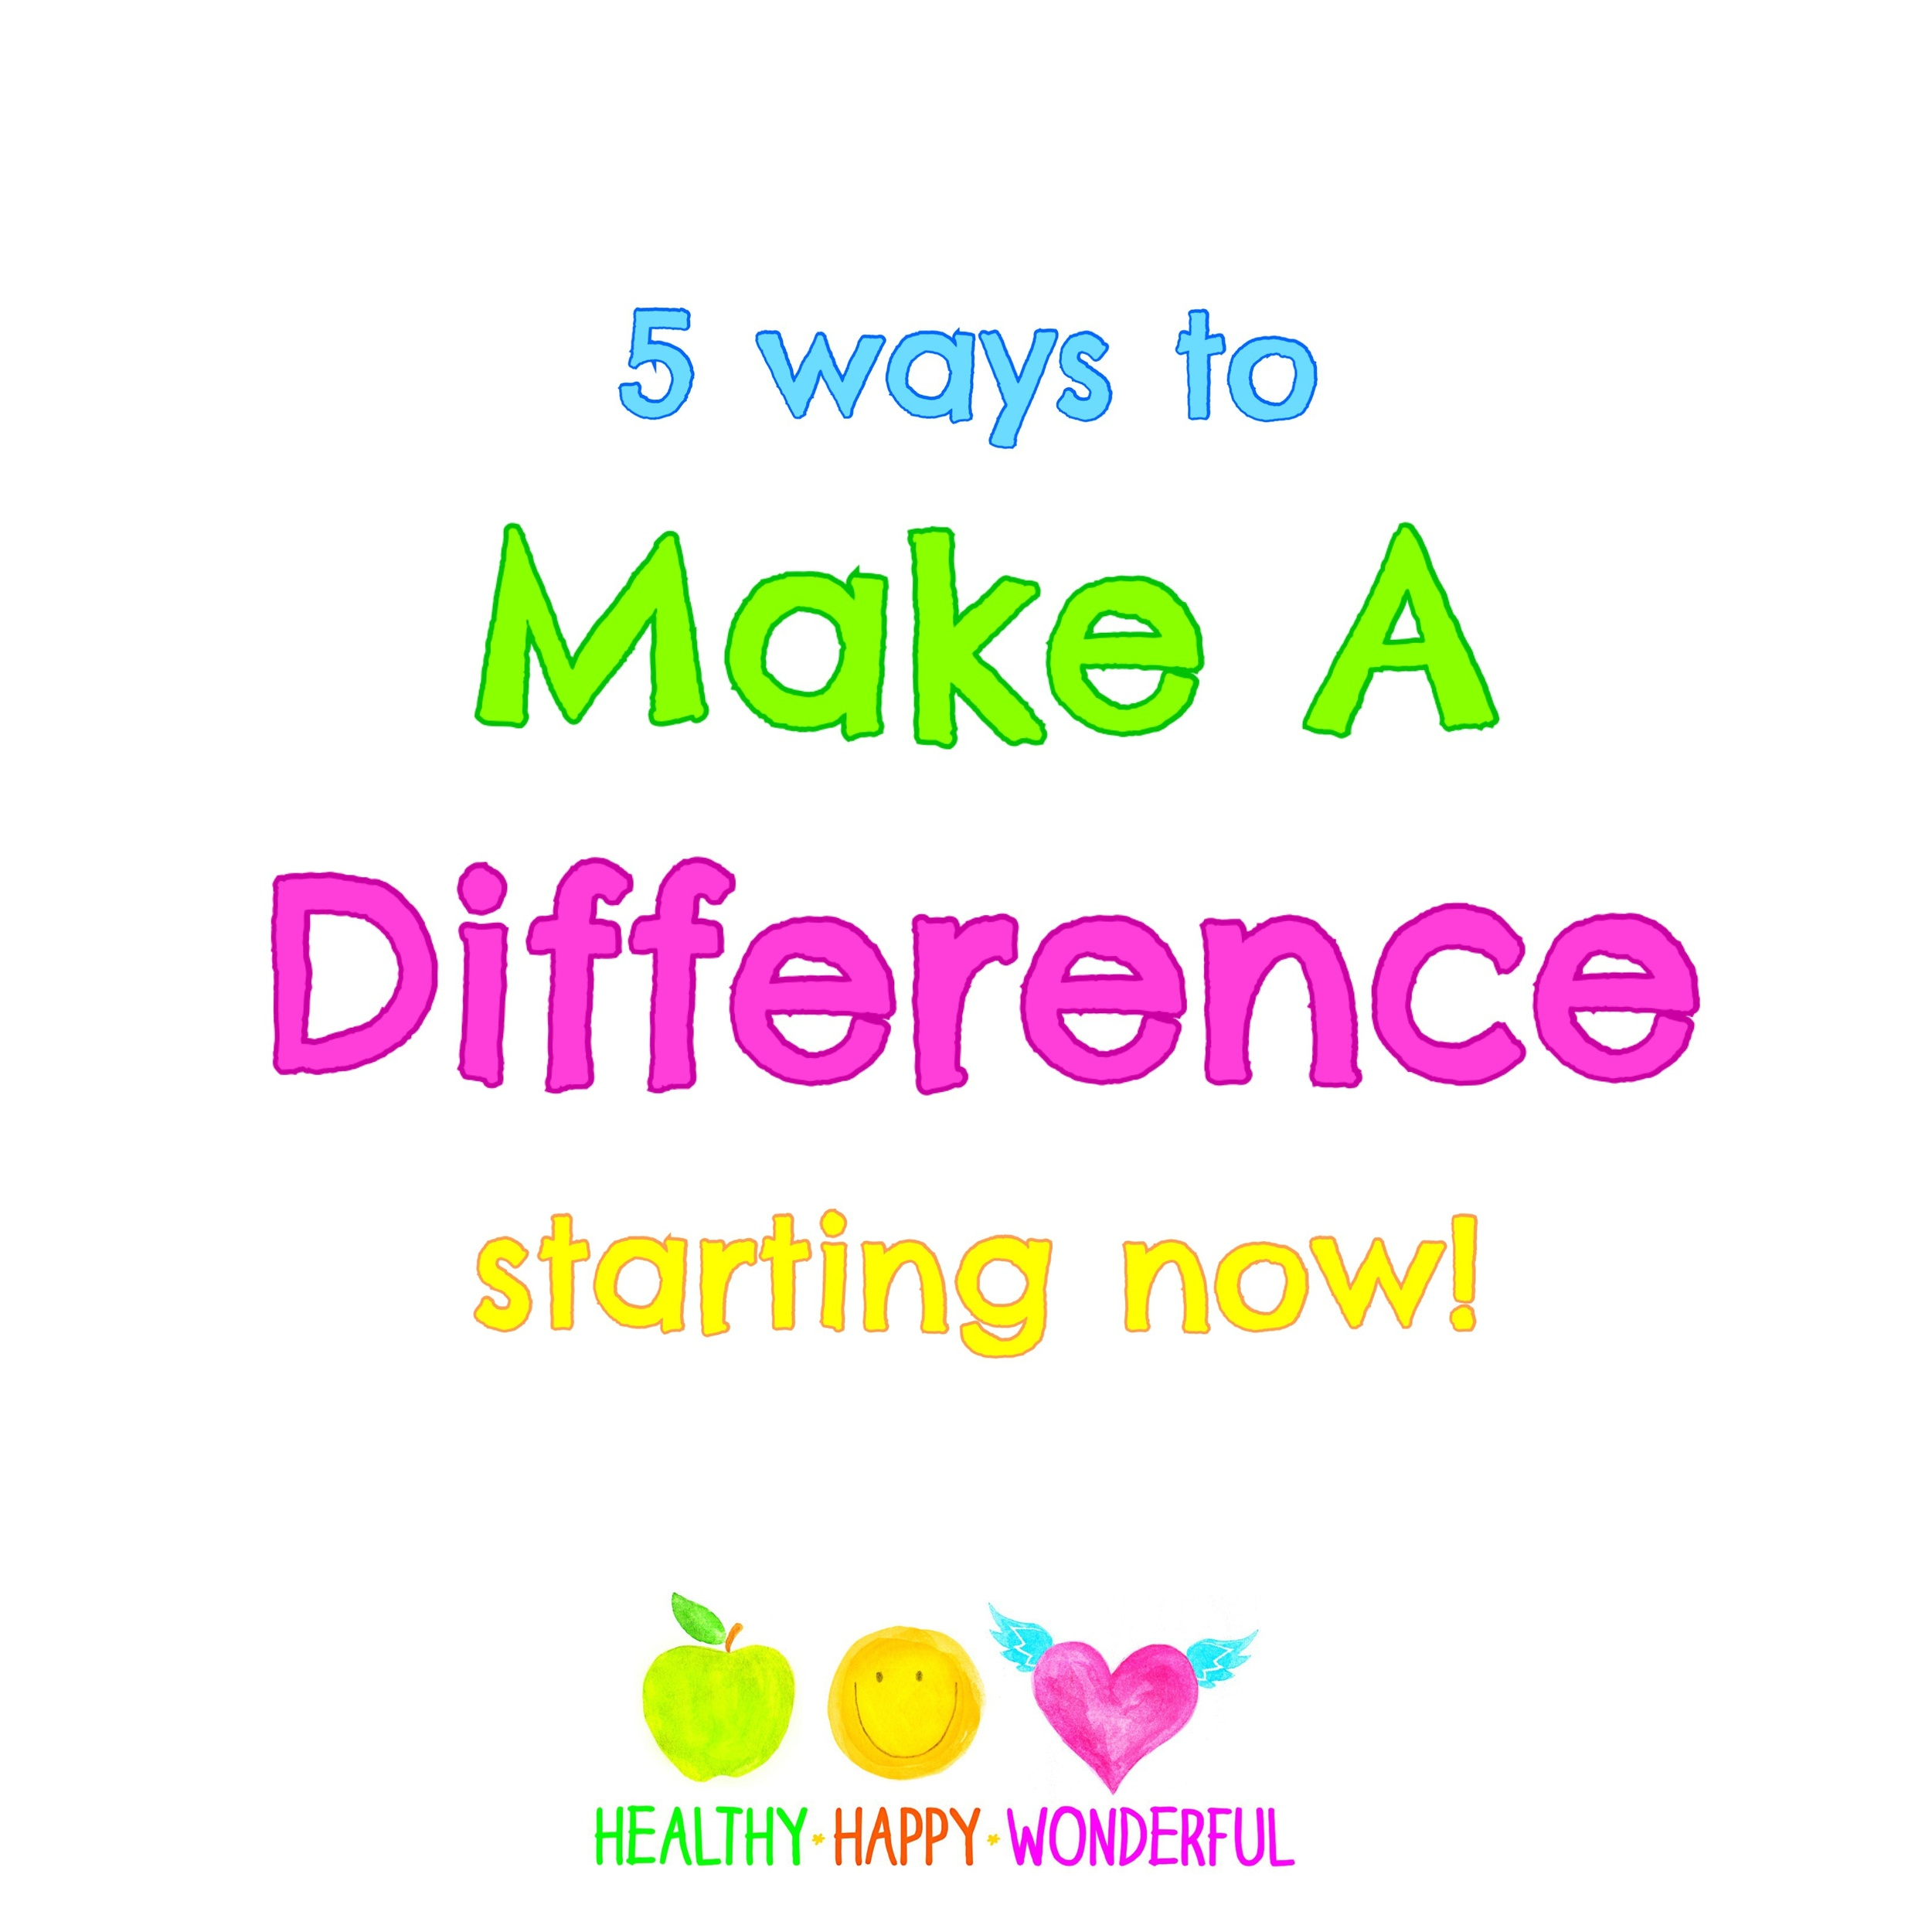 5 ways to make a difference - starting now!